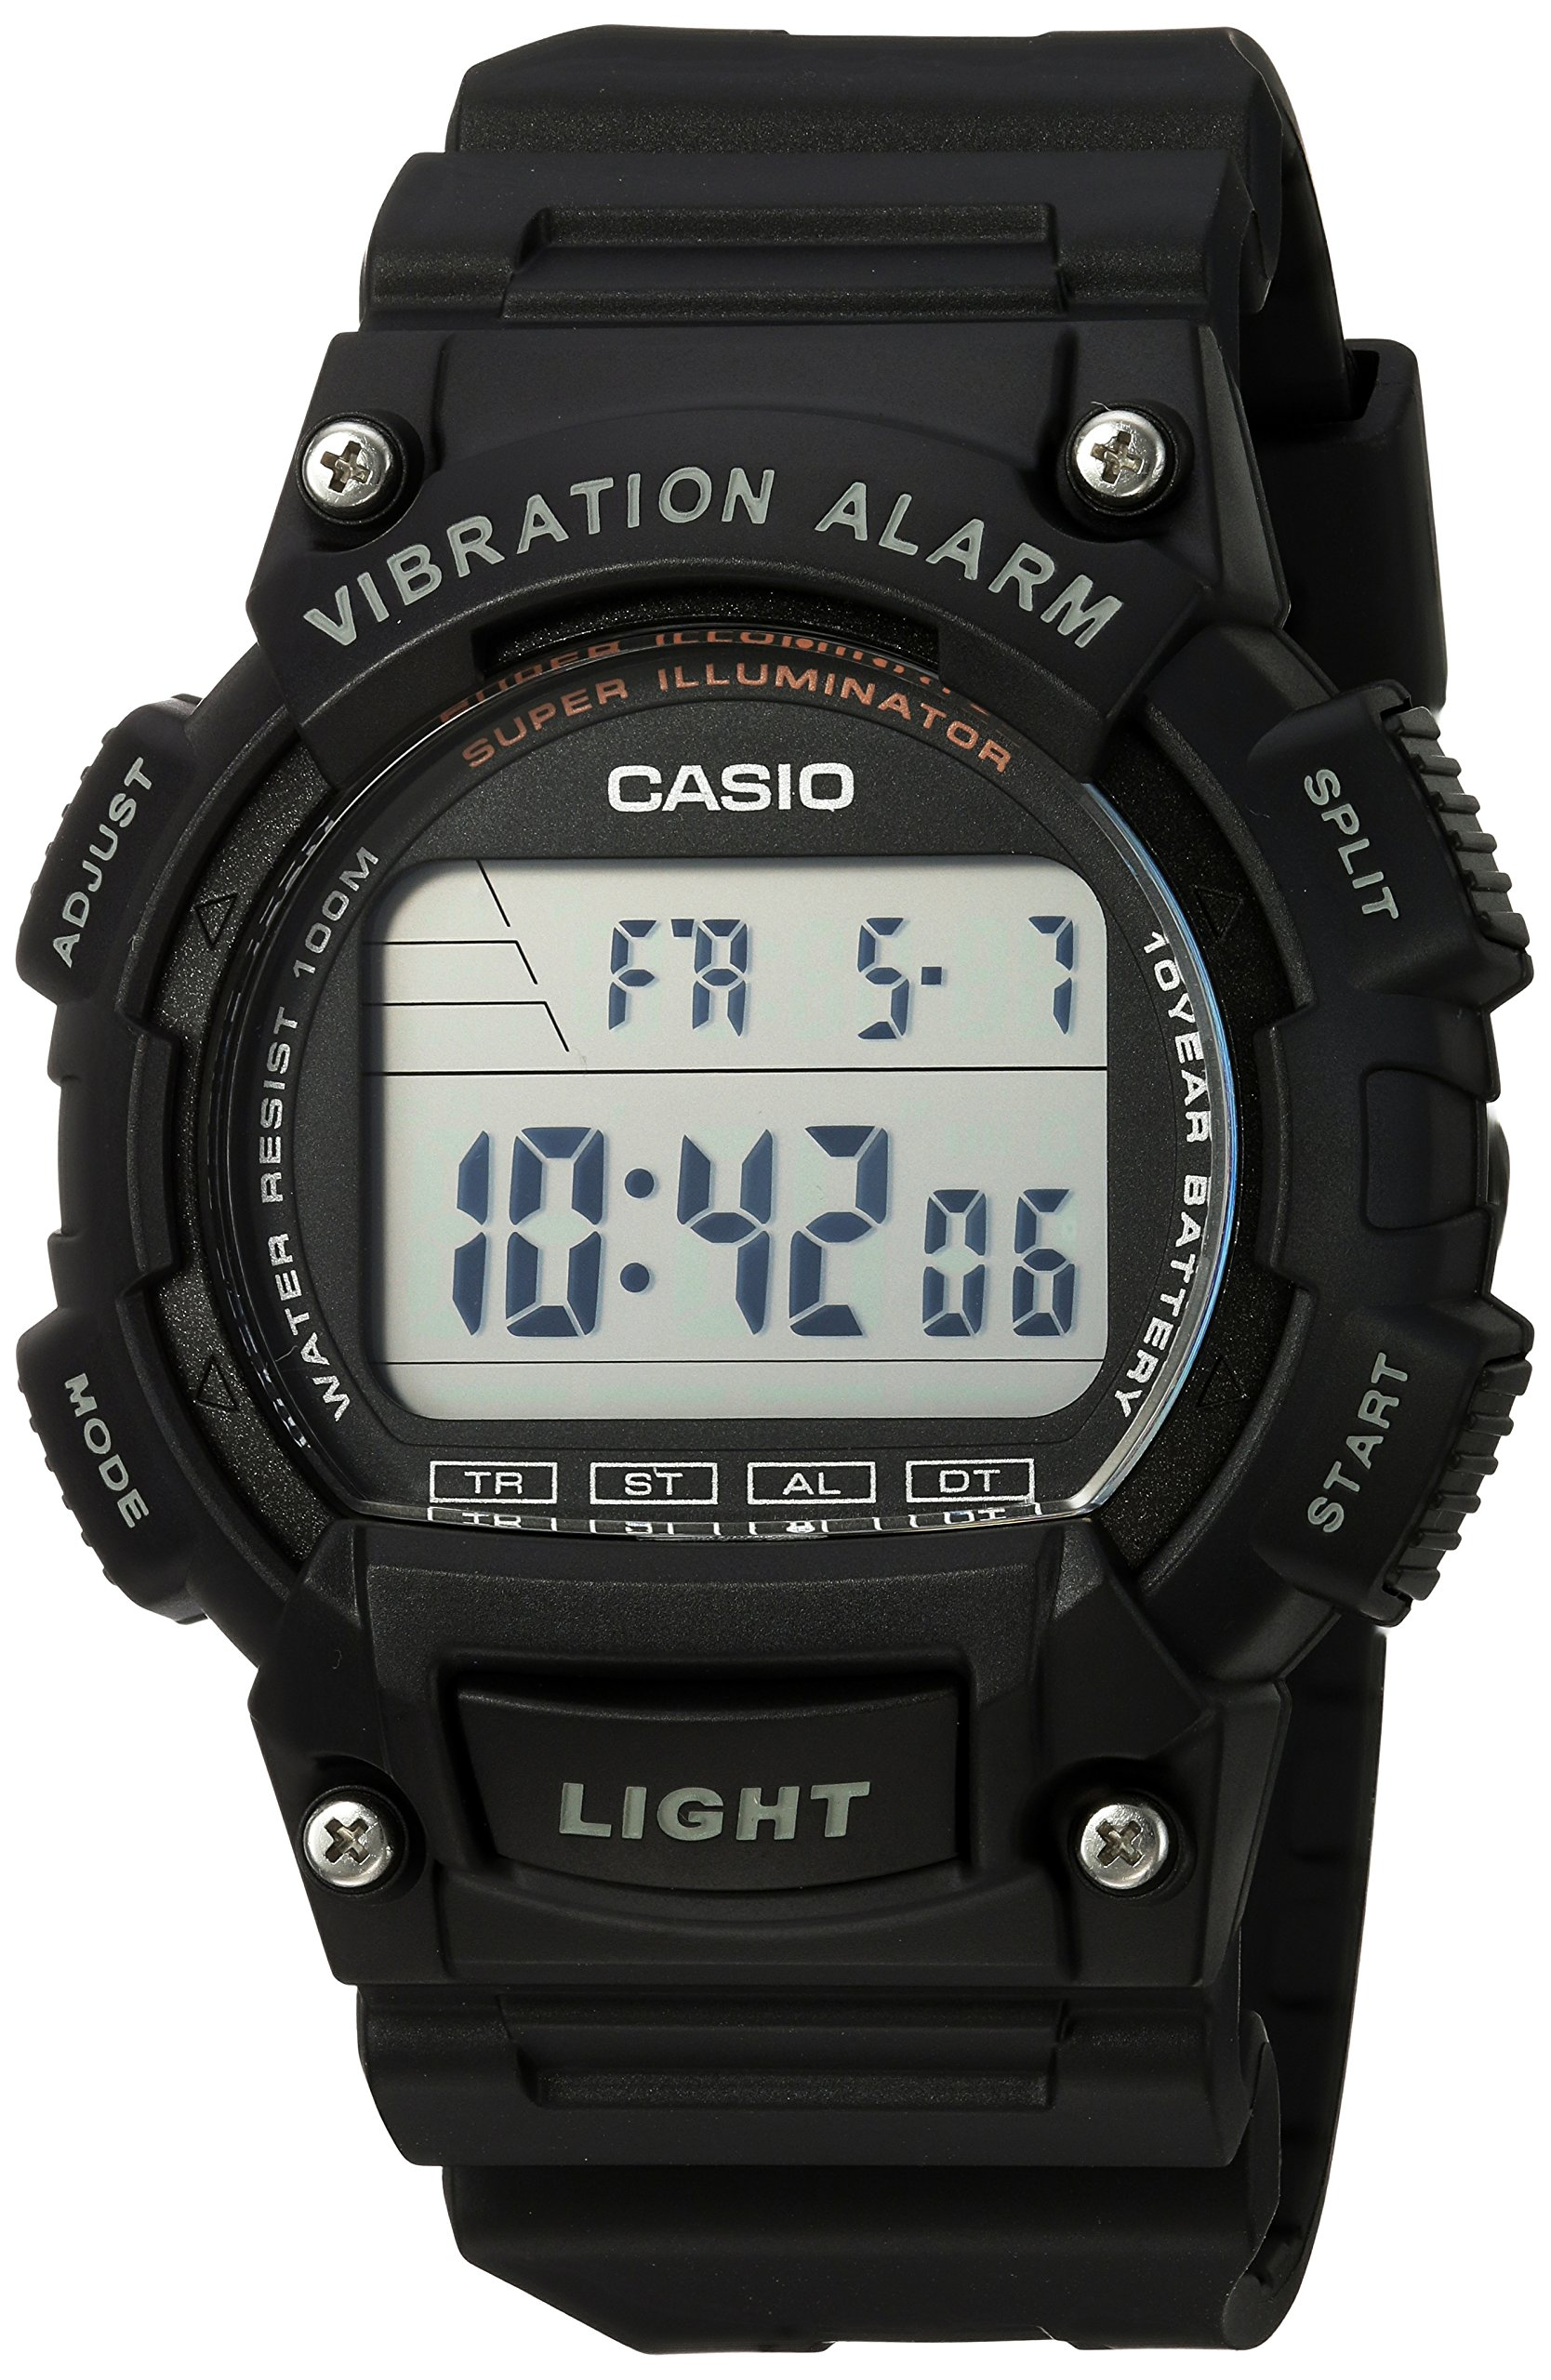 Casio Men's 'Super Illuminator' Quartz Resin Casual Watch, Color:Black (Model: W-736H-1AVCF) by Casio